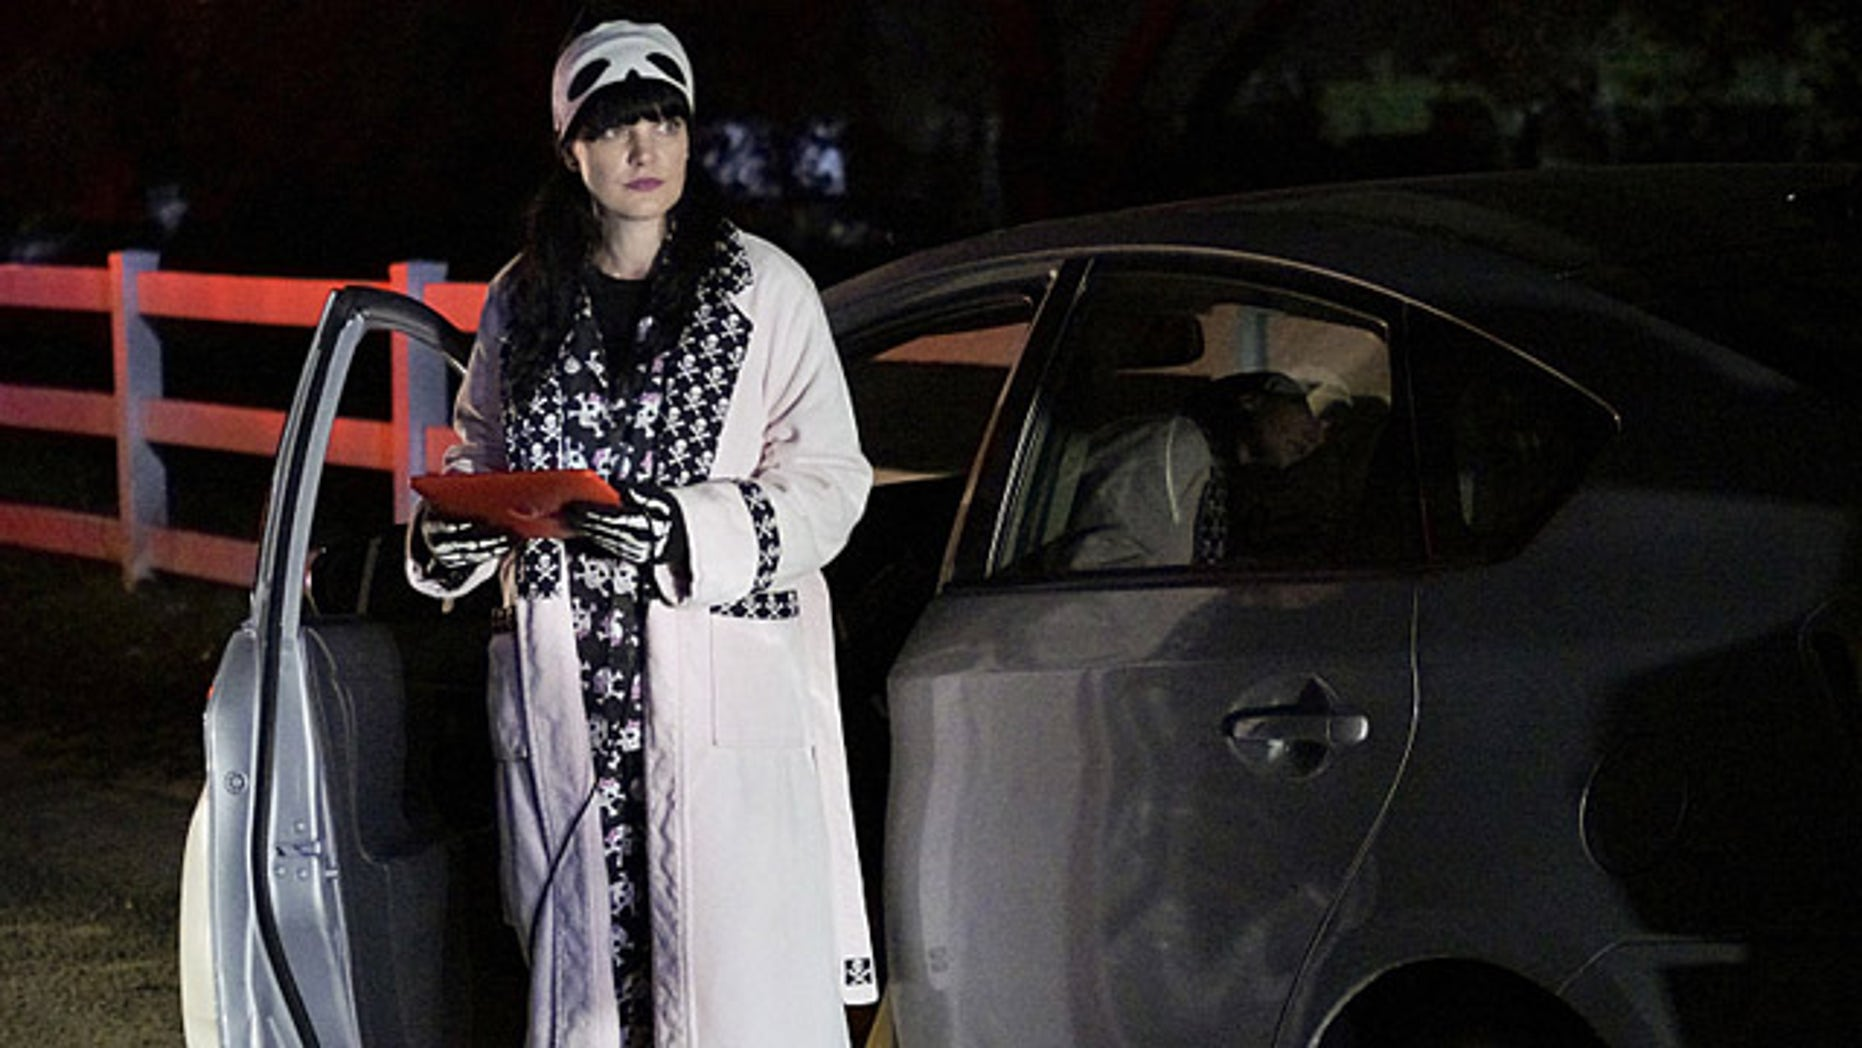 Abby (Pauley Perrette) works in her pajamas on the 'After Hours' episode of 'NCIS' (Jace Downs/CBS)